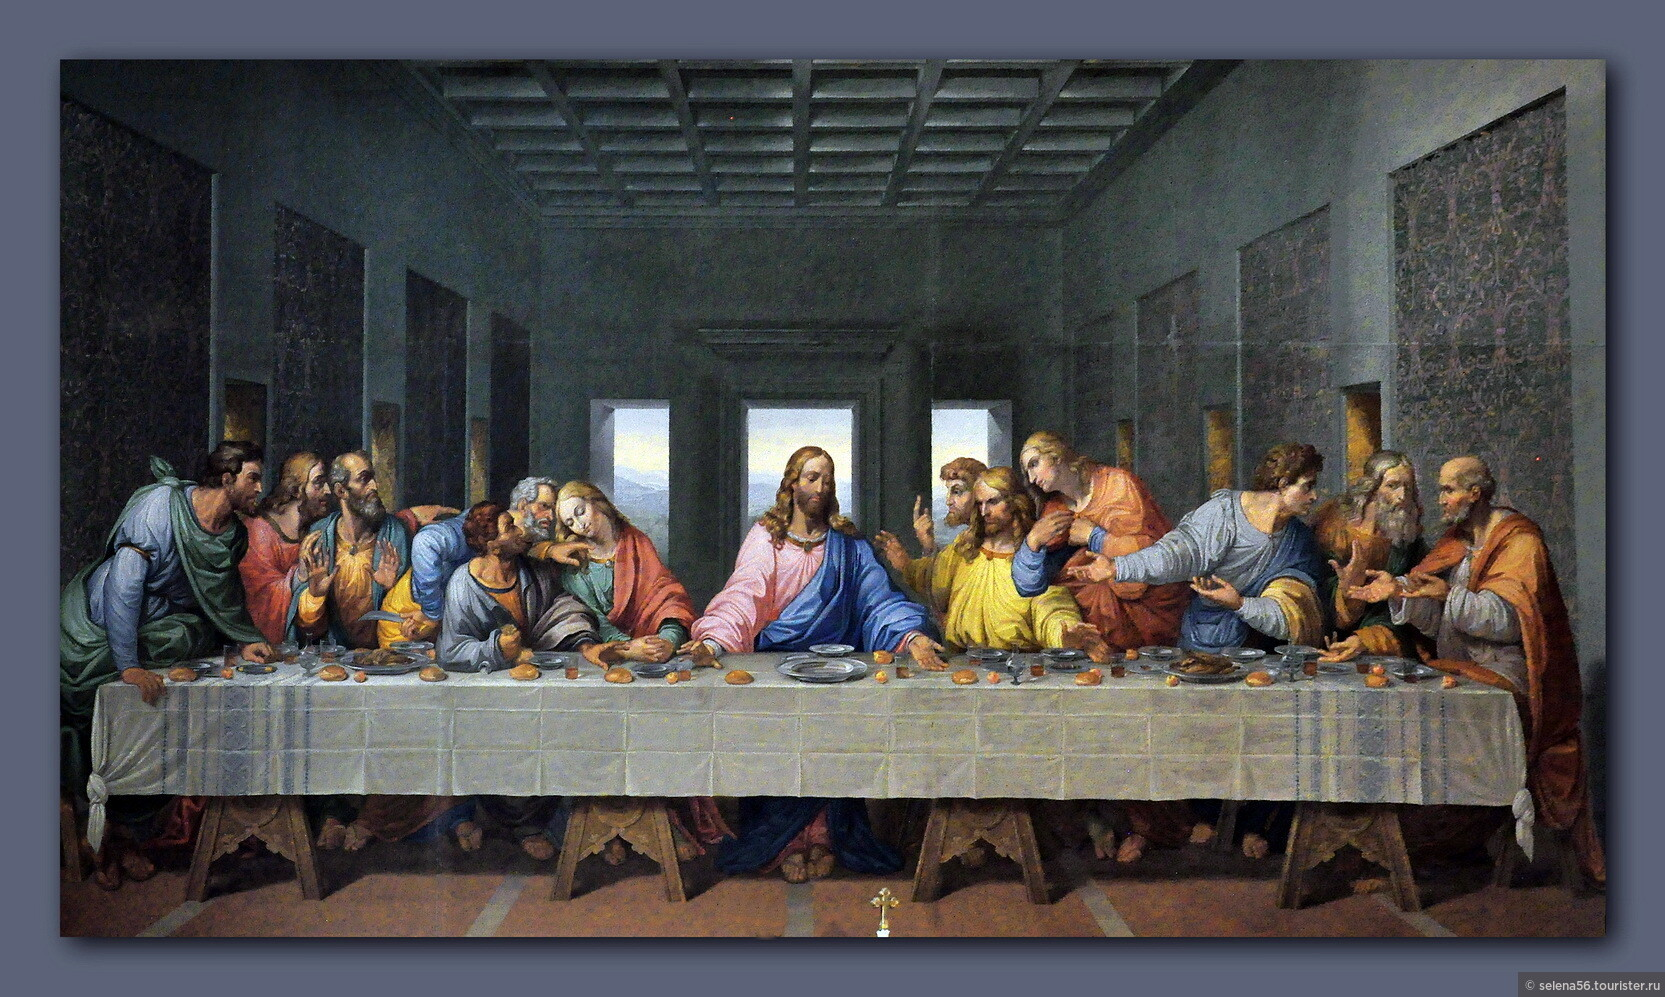 compare and contrast the last supper between da vinci and tintoretto Compare and contrast leonardo da vinci's last supper to tintoretto's last supper painted roughly 100 years apart da vinci's painting was done in the high renaissance style, while tintoretto's painting was done in the style of mannerism.